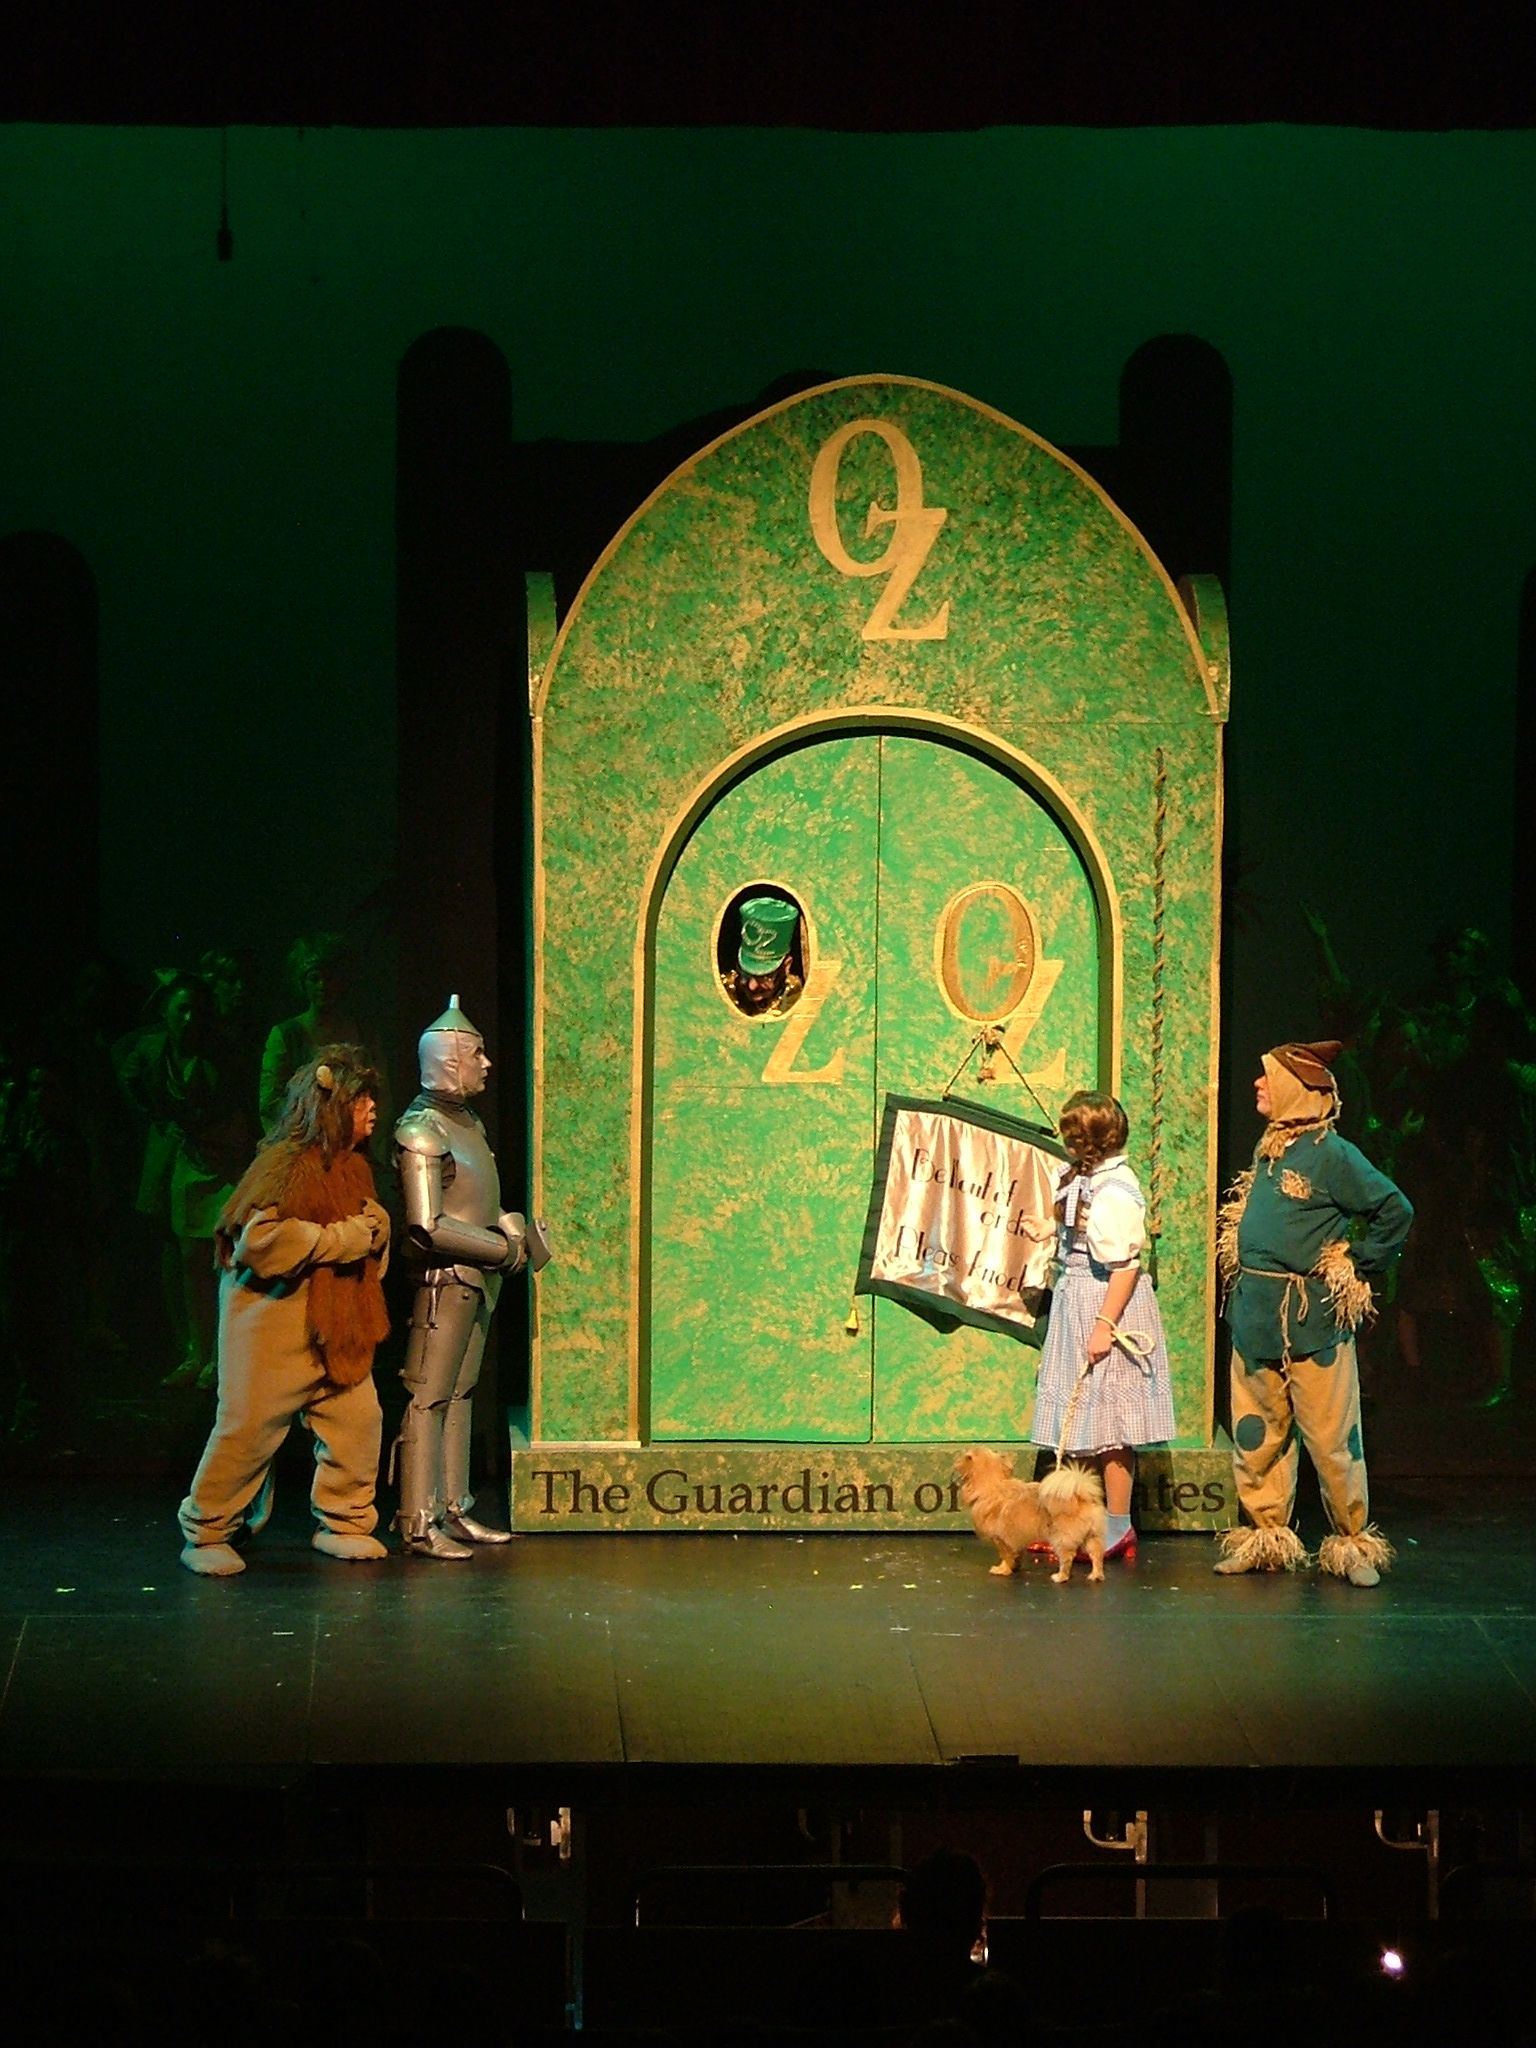 the wizard of oz scenery - Google Search | Wizard of Oz scenery ...